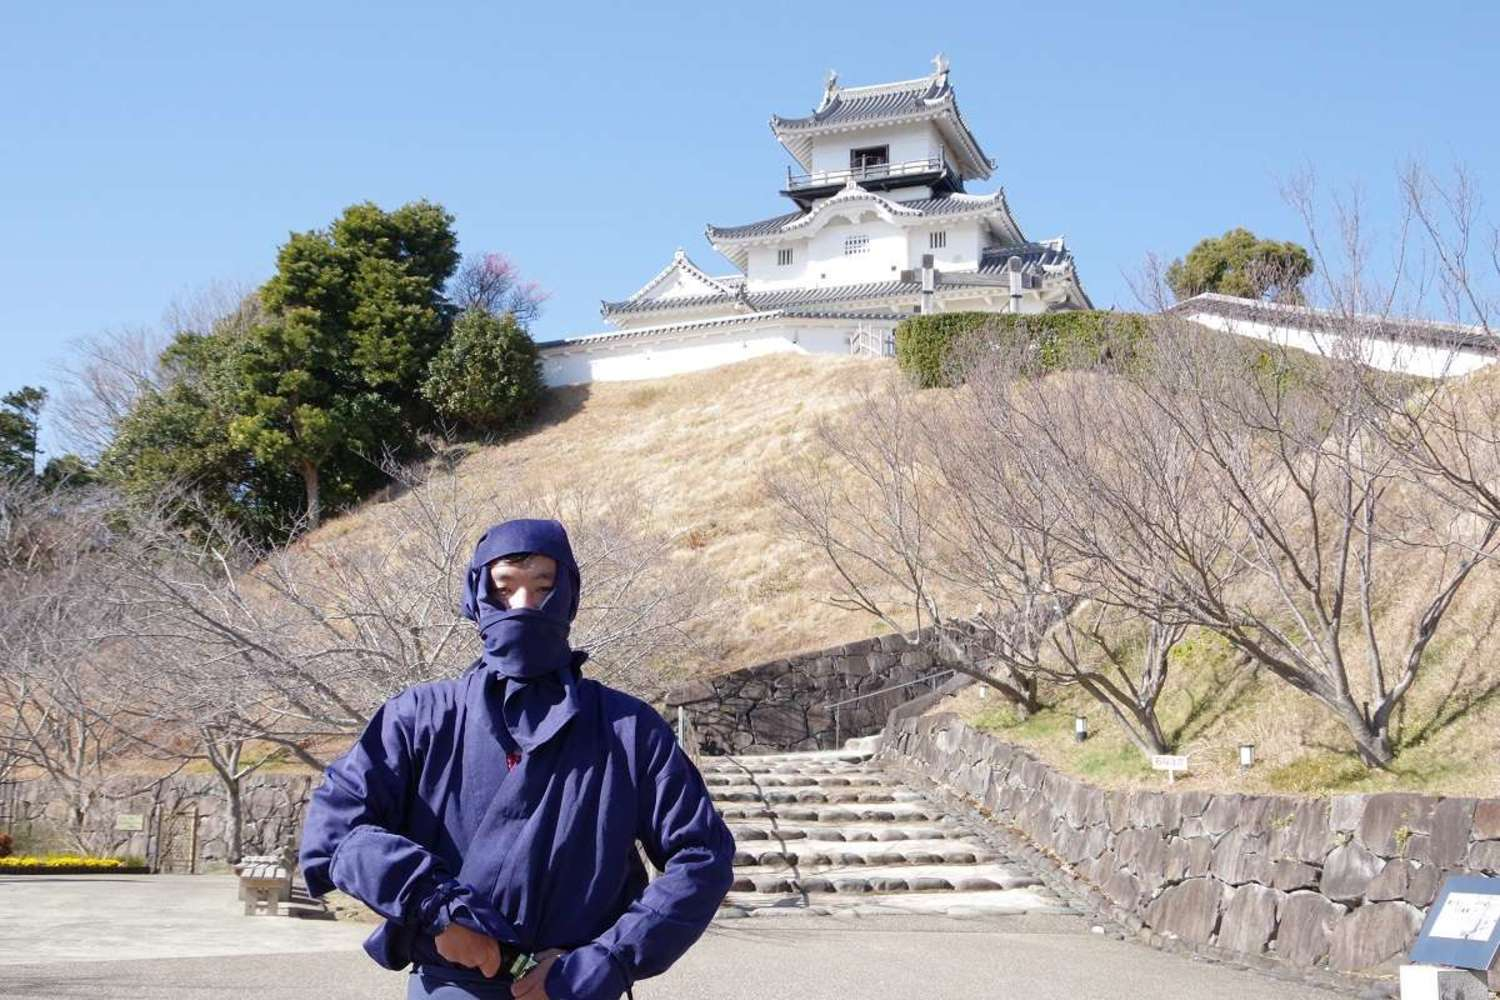 [sightseeing in Shizuoka report of foreigner] We sneak into Kakegawa-jo Castle with costume of ninja?